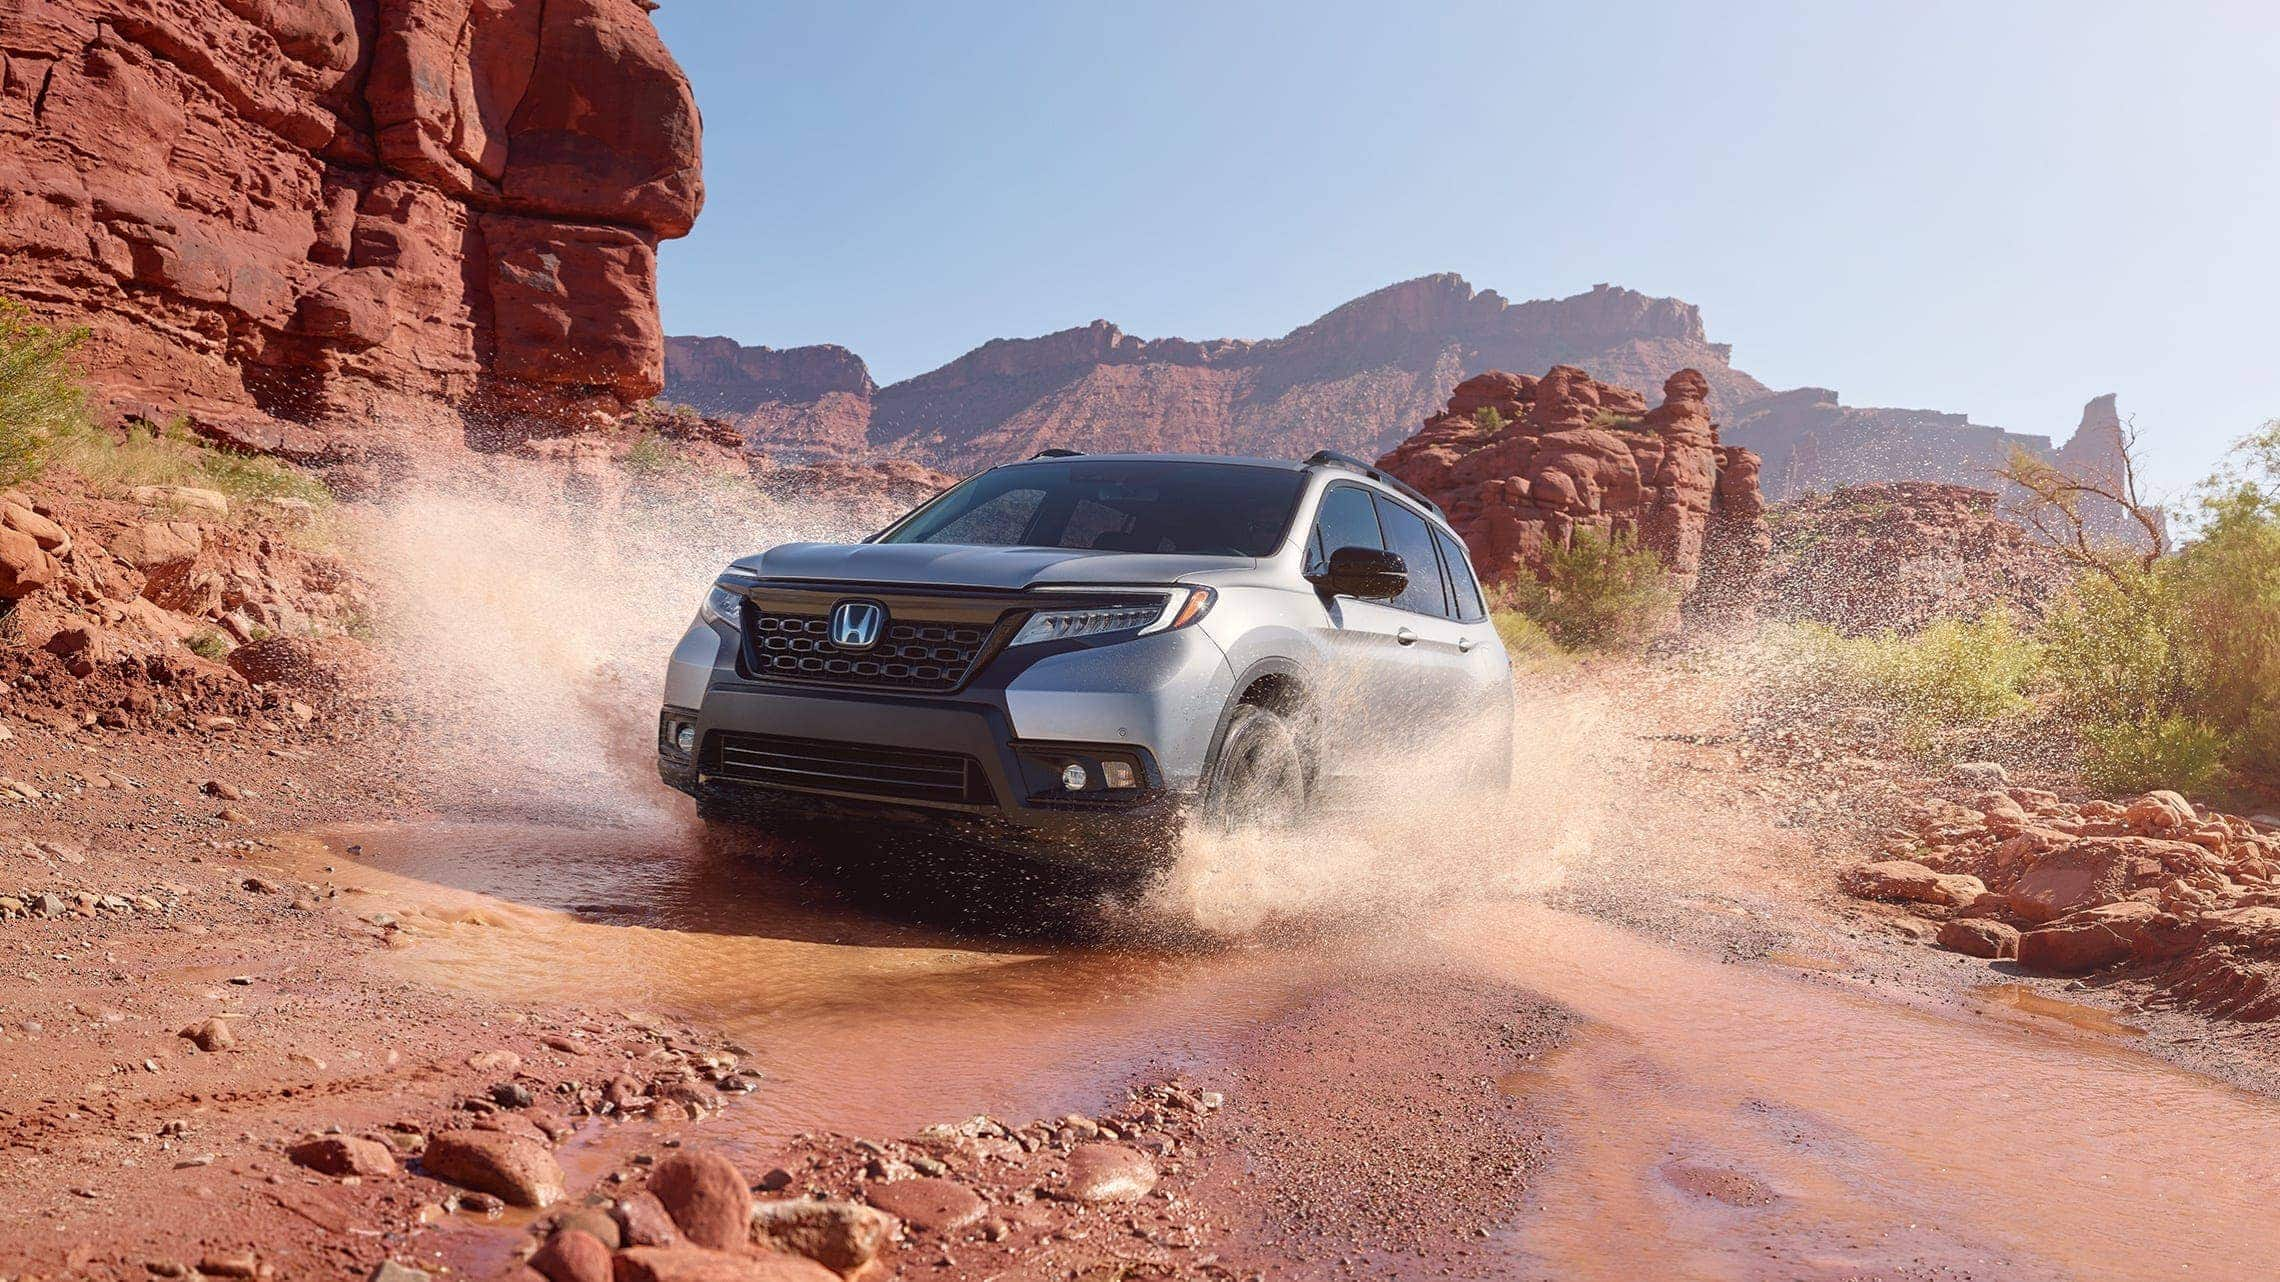 Driver-side front 3/4 view of 2019 Honda Passport Elite in Lunar Silver Metallic, demonstrating all-wheel drive and splashing through water on a rugged mountain road.